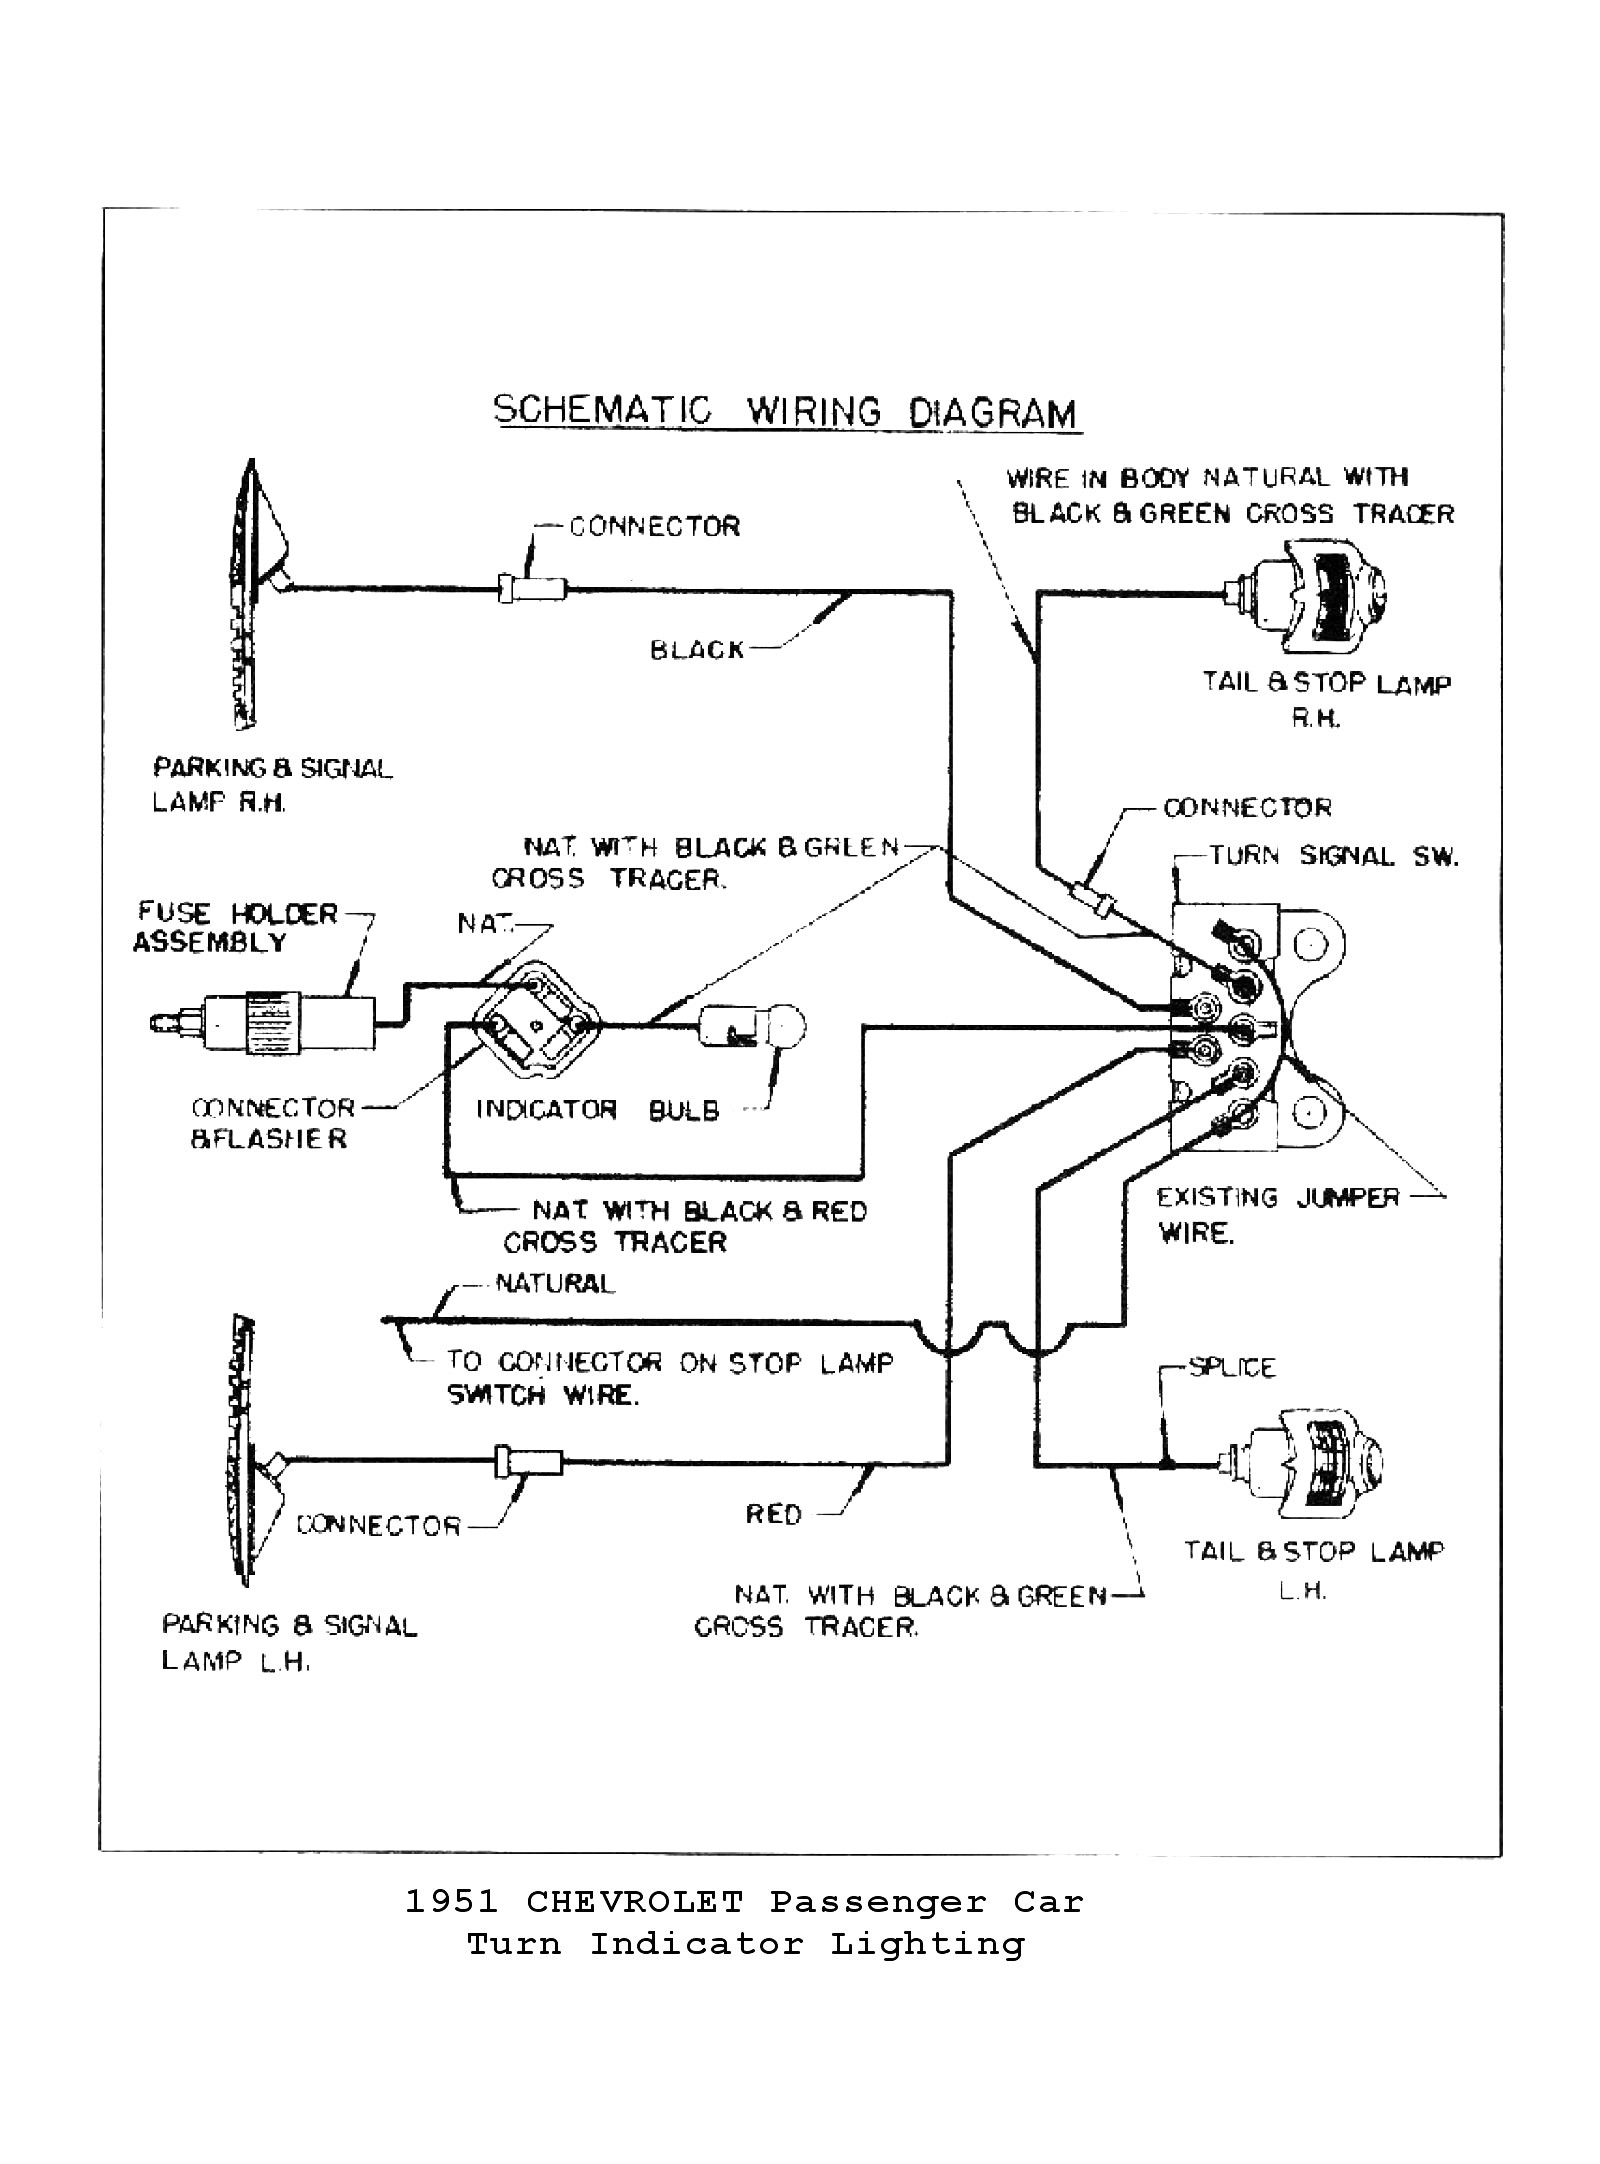 Grote Turn Signal Switch Wiring Diagram 4807 - Great Installation Of - Universal Turn Signal Switch Wiring Diagram